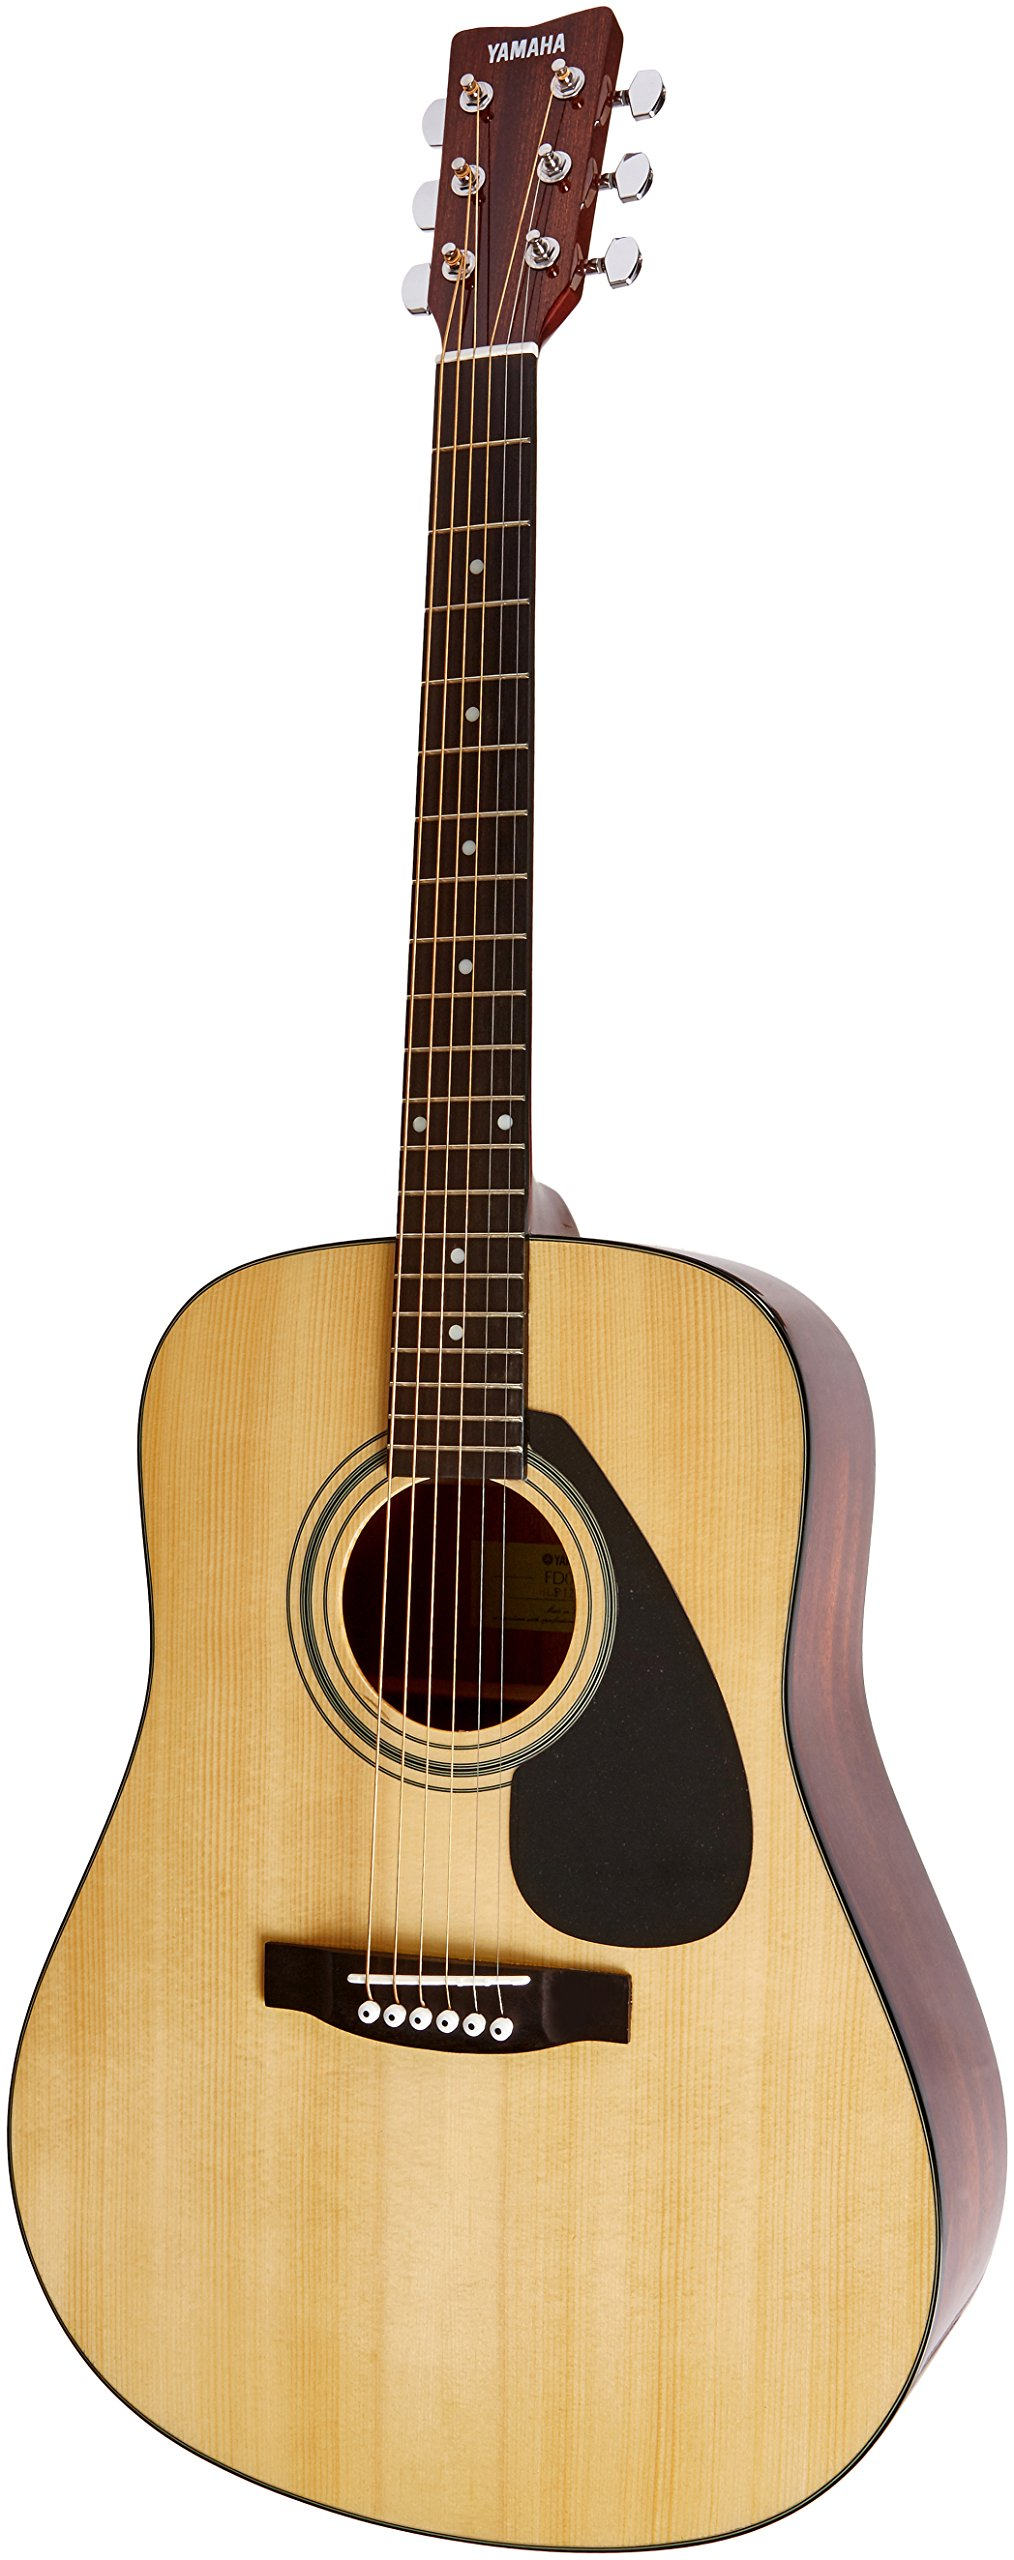 Yamaha FD01S Solid Top Acoustic Guitar (Amazon-Exclusive) by YAMAHA